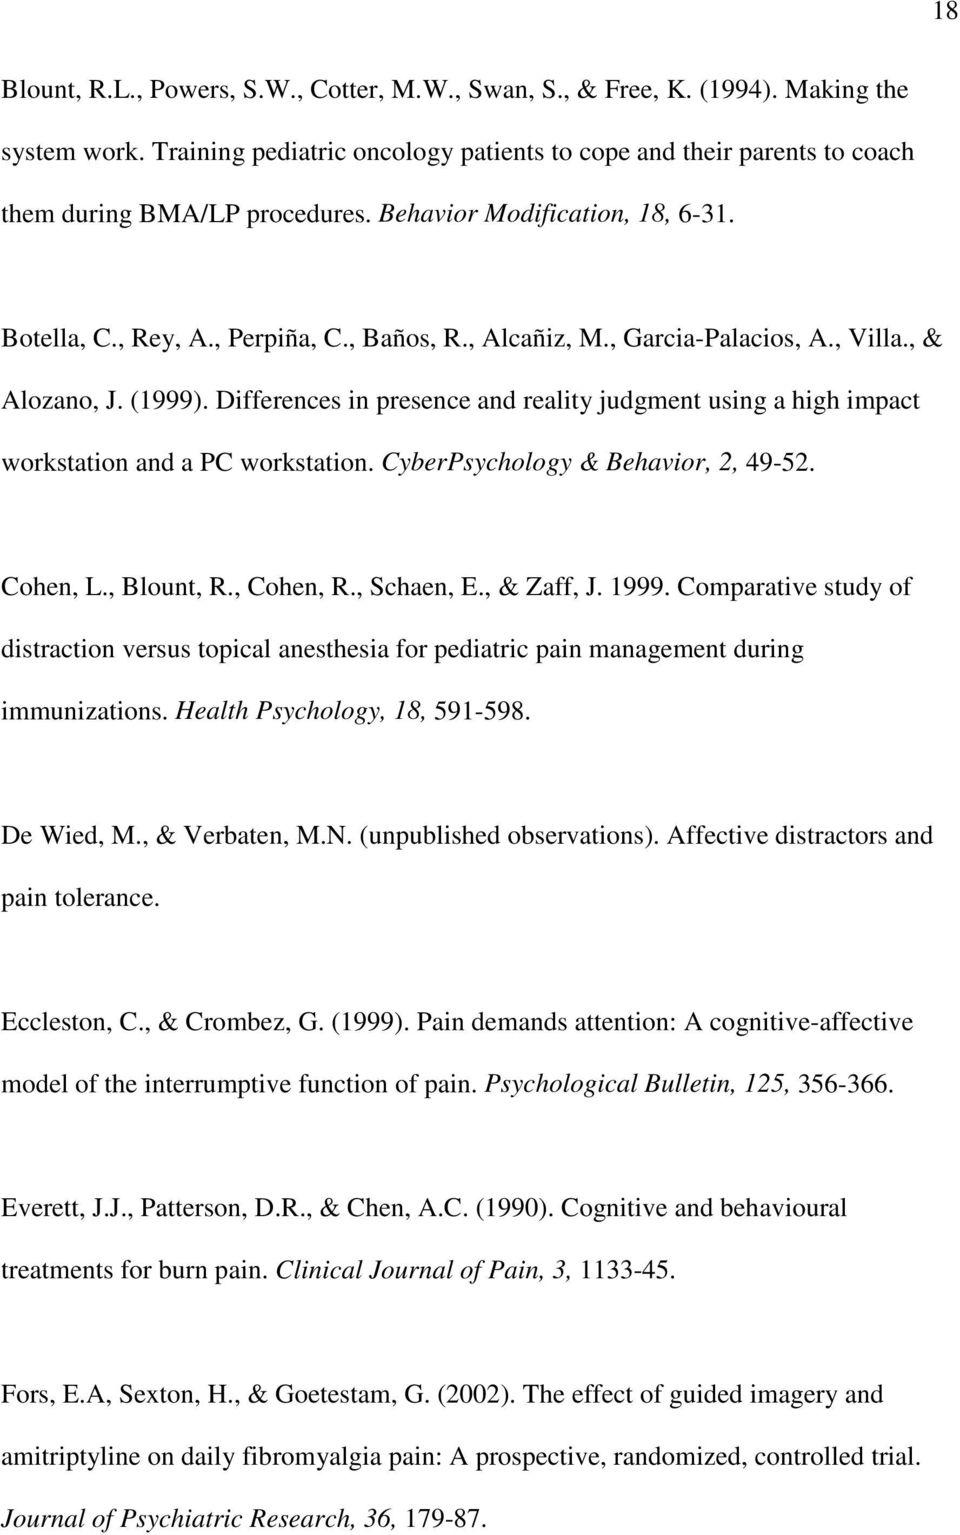 Differences in presence and reality judgment using a high impact workstation and a PC workstation. CyberPsychology & Behavior, 2, 49-52. Cohen, L., Blount, R., Cohen, R., Schaen, E., & Zaff, J. 1999.